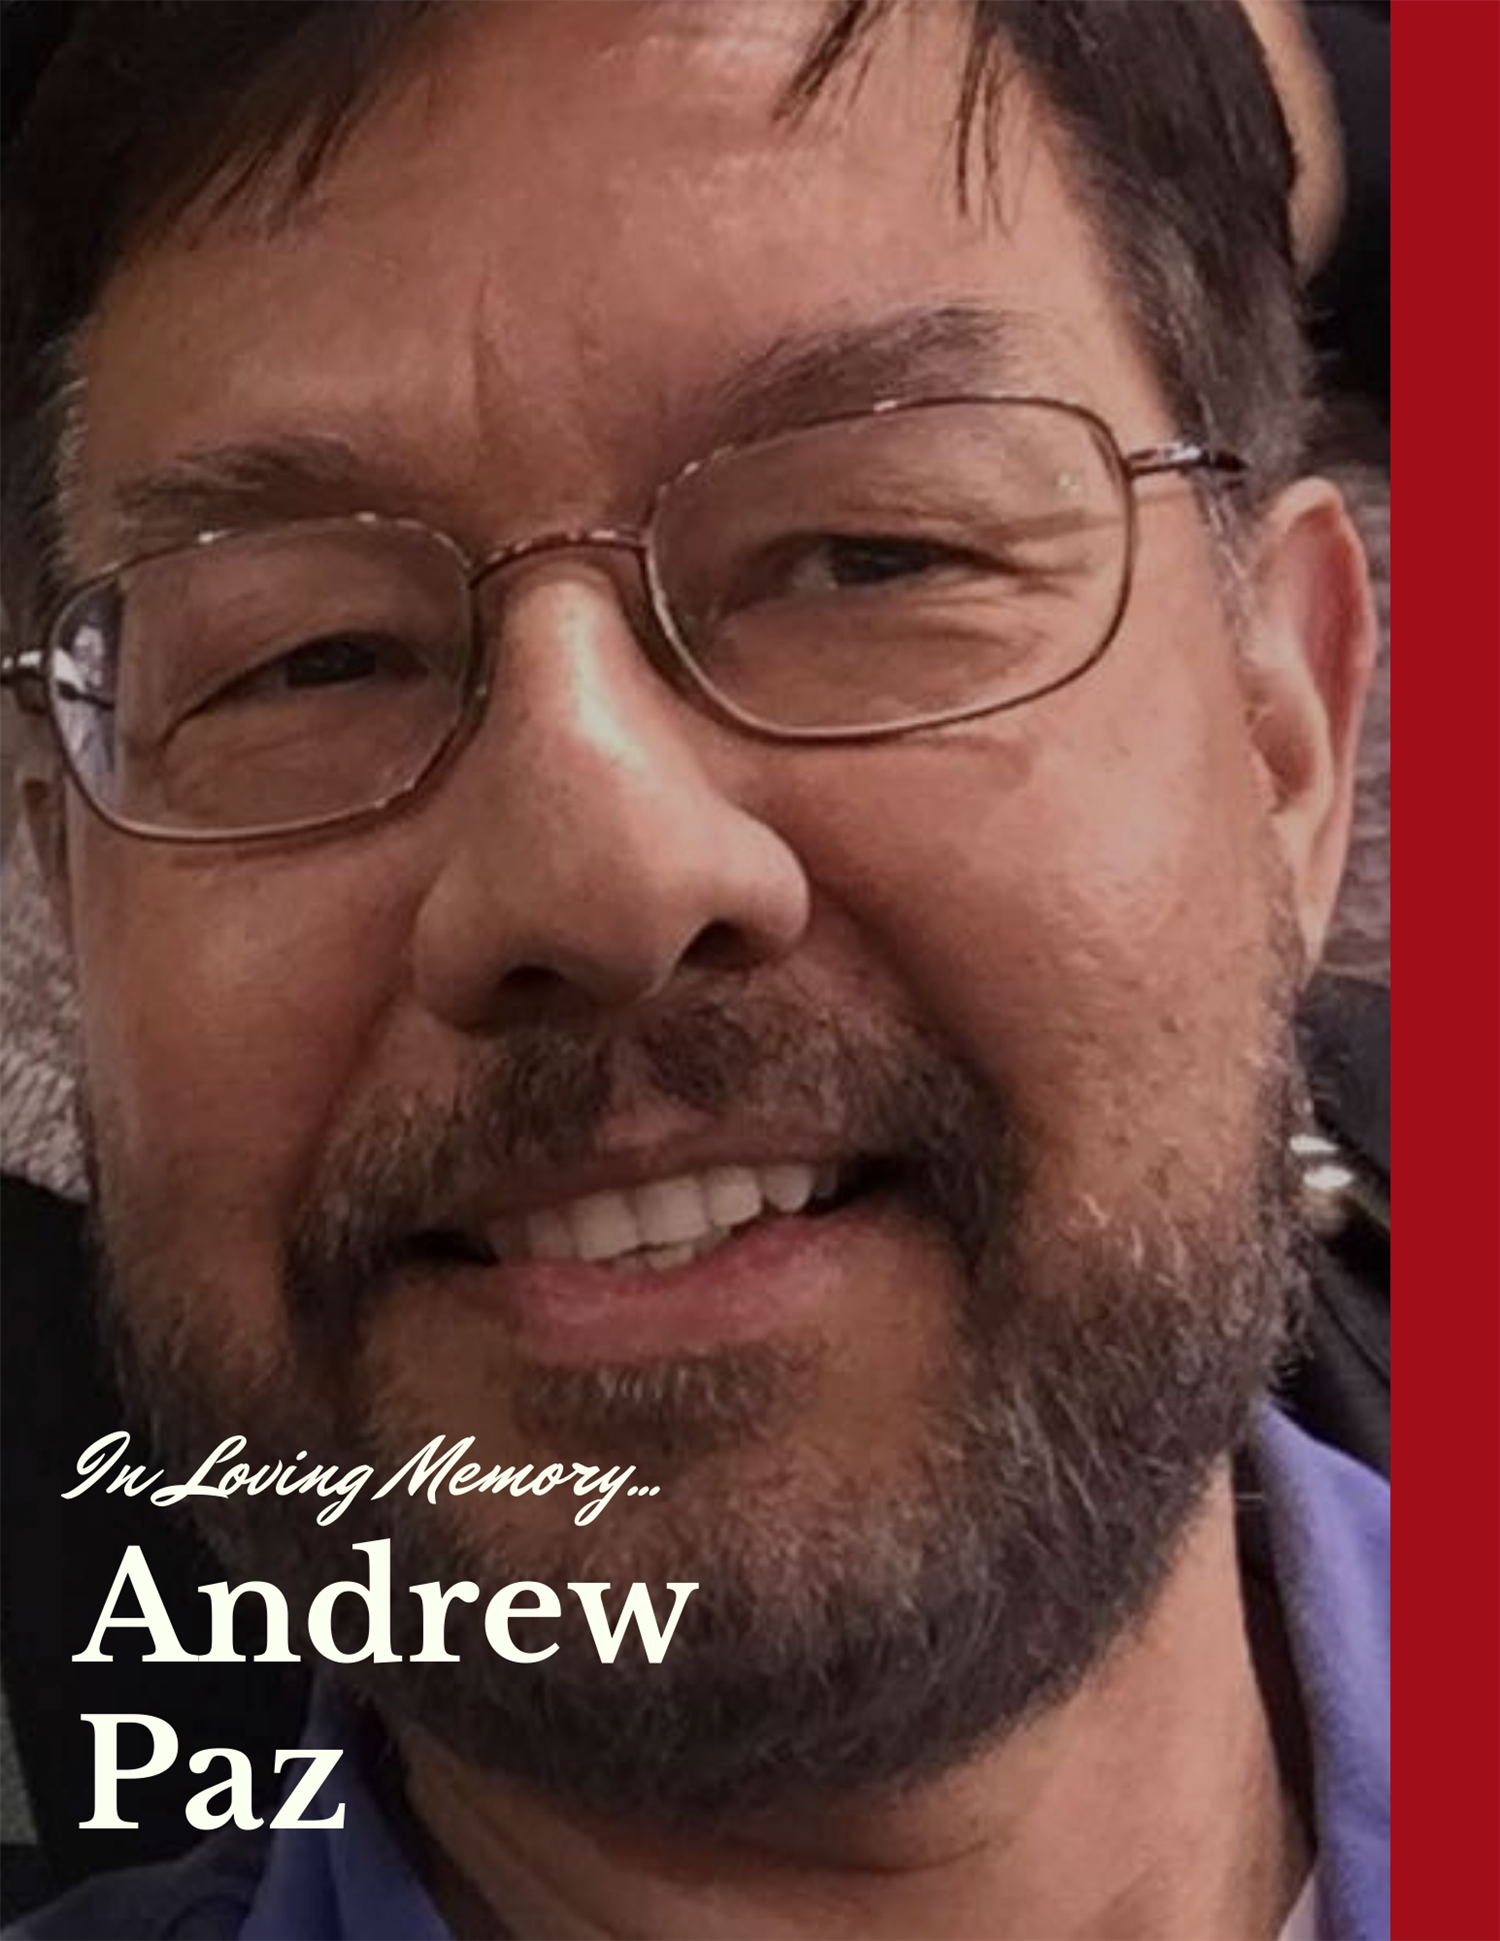 The Manor ISD Technology Department Shares The Loss of Mr. Andrew Paz